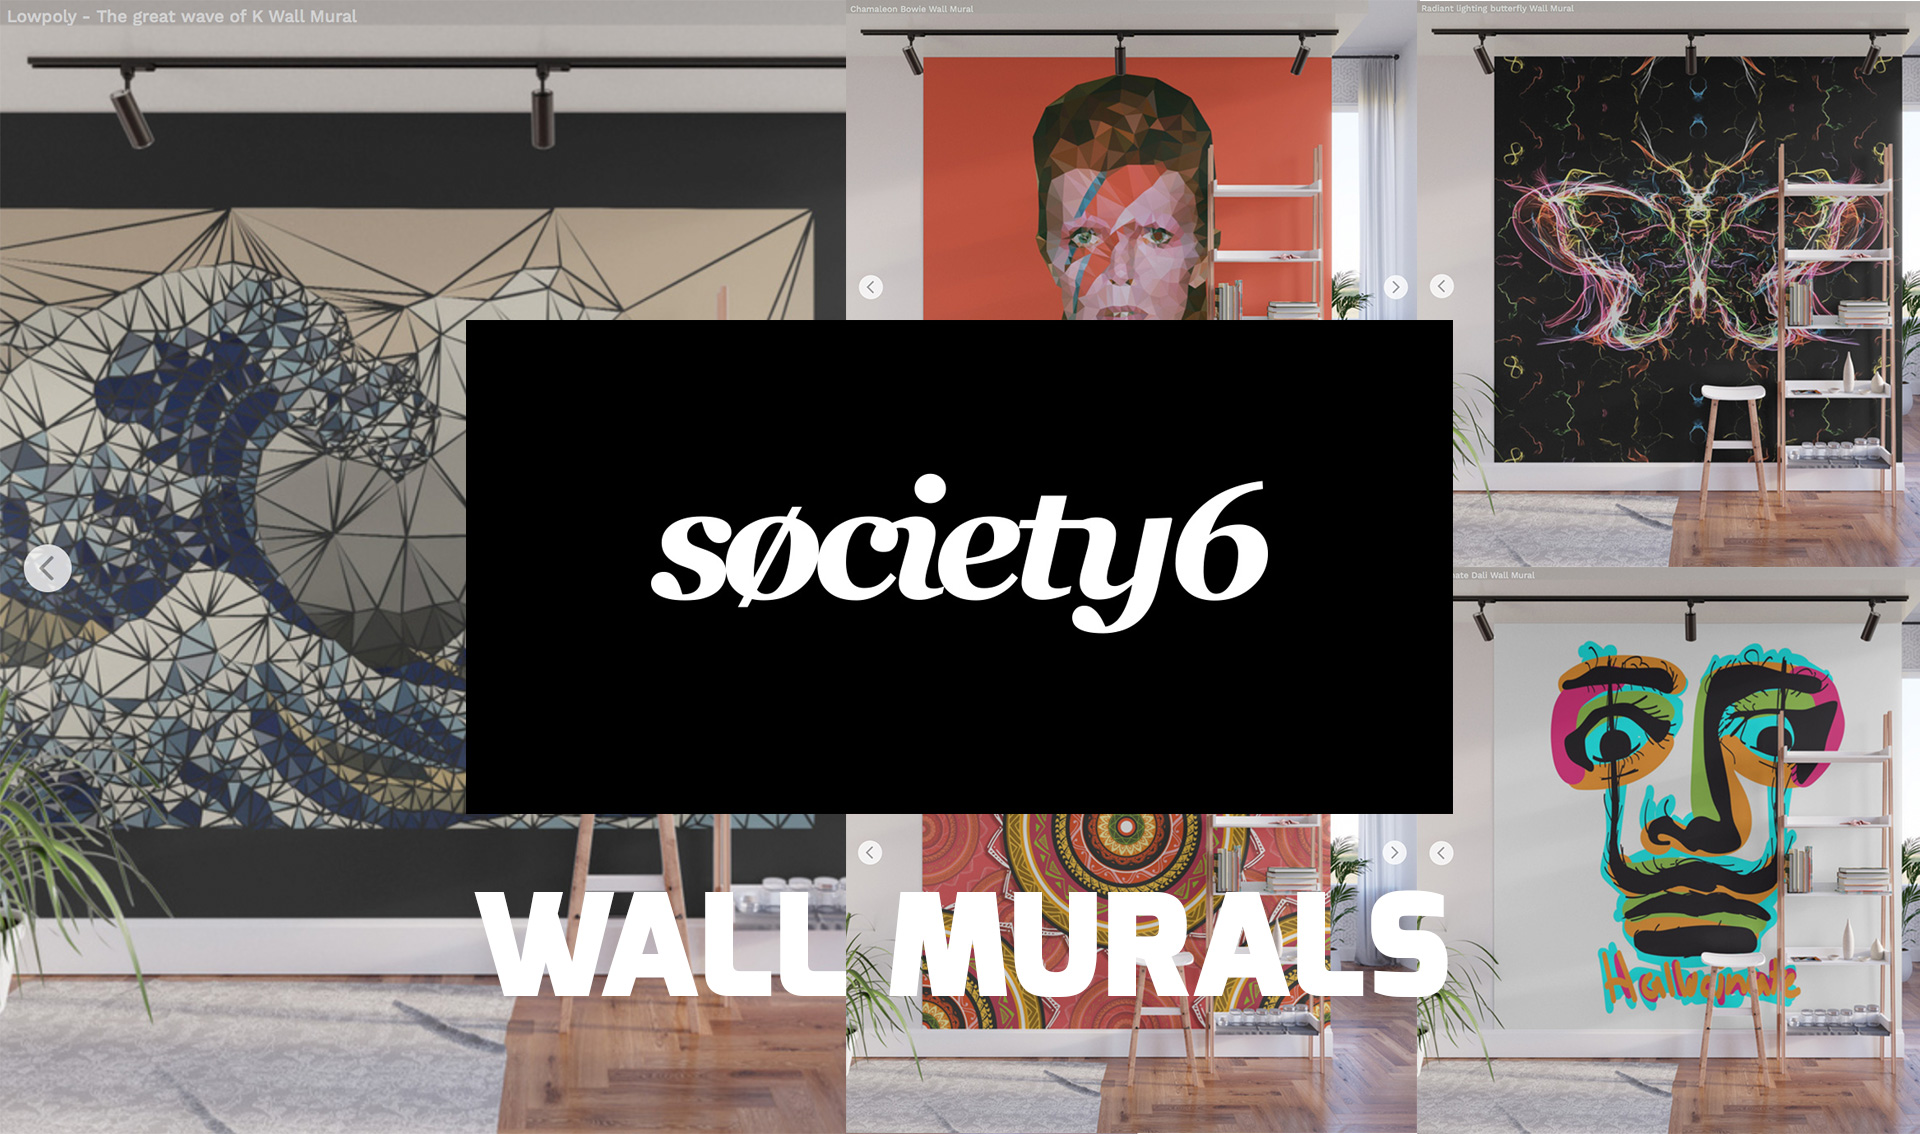 Society6 introduce Wall Mural